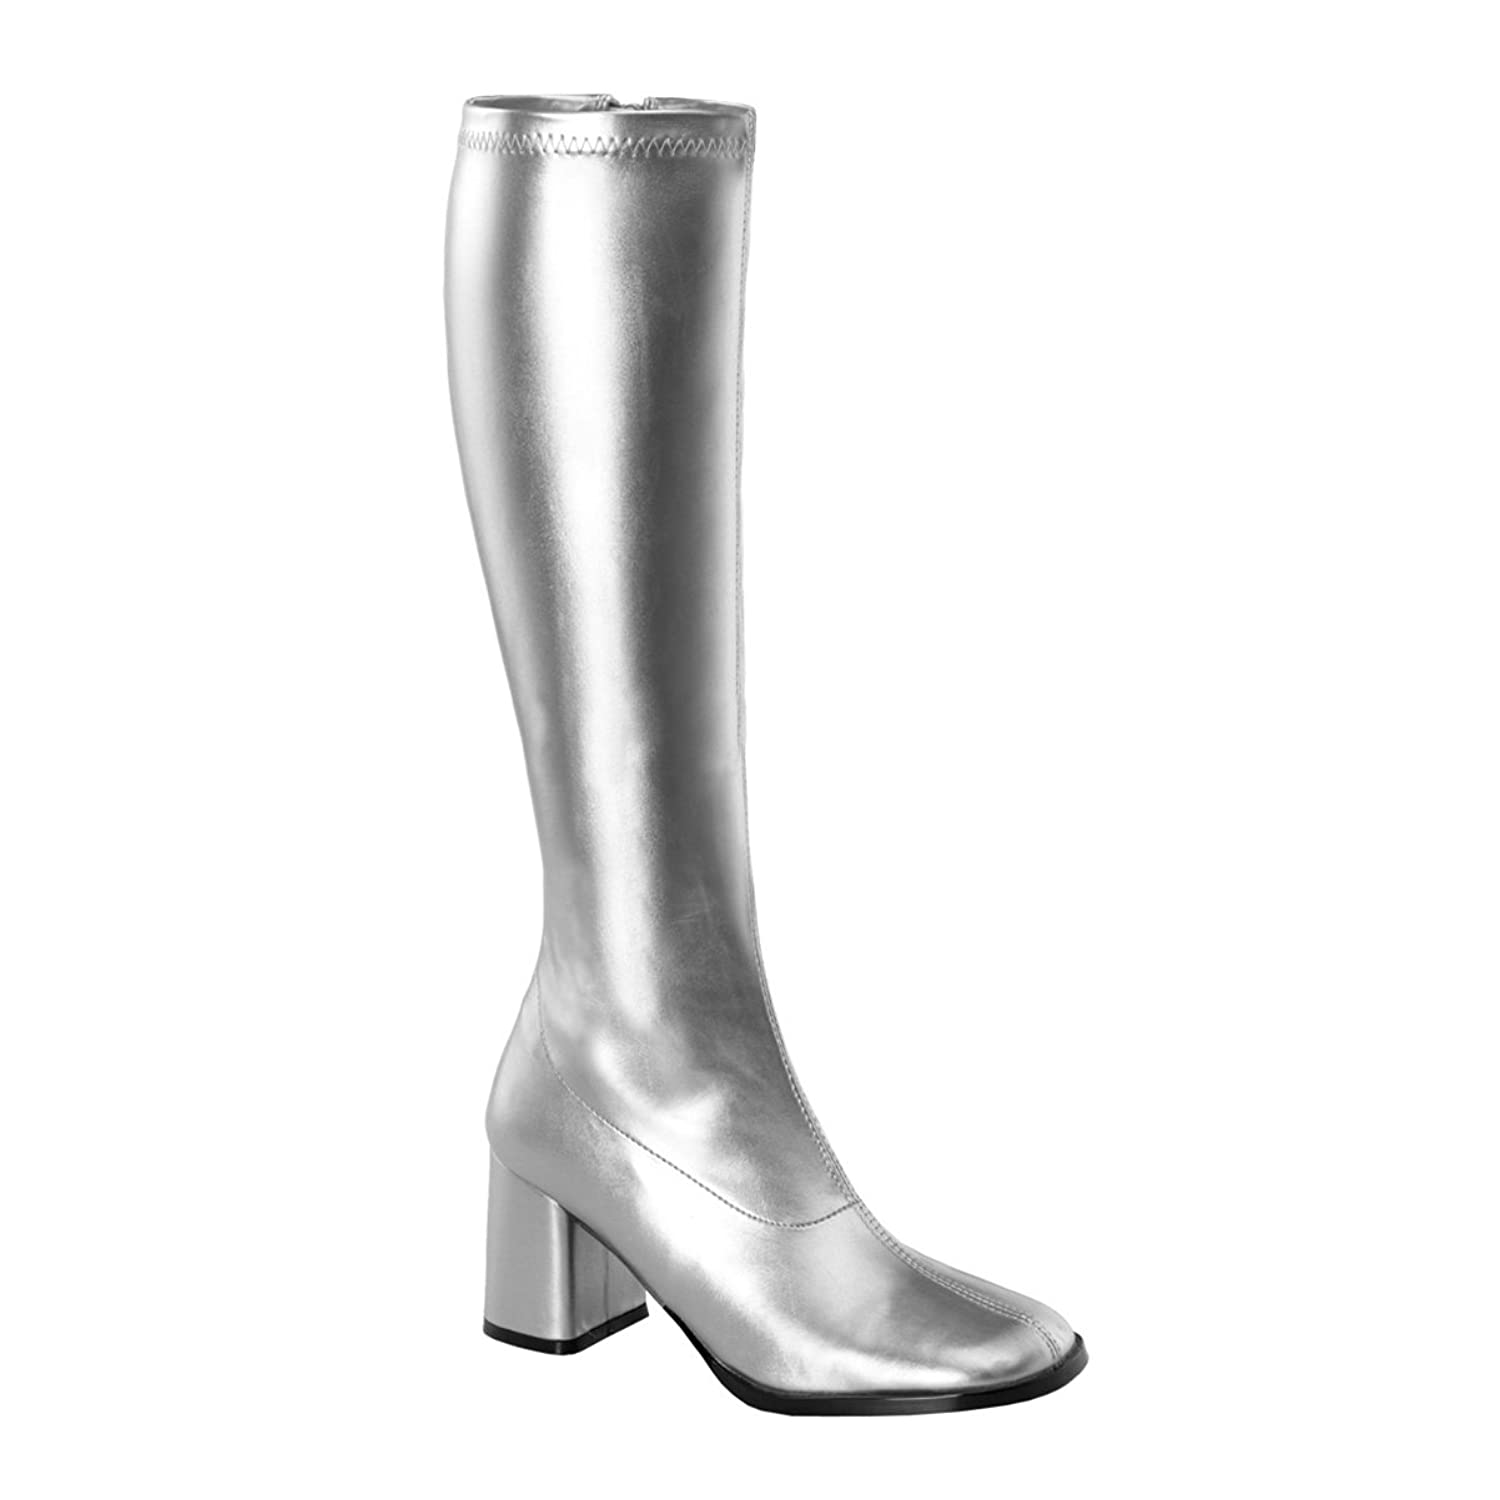 36005eae21d Womens Silver Boot Knee High GoGo Boots 3 Inch Block Heel Stretch Costumes  Shoe 80%